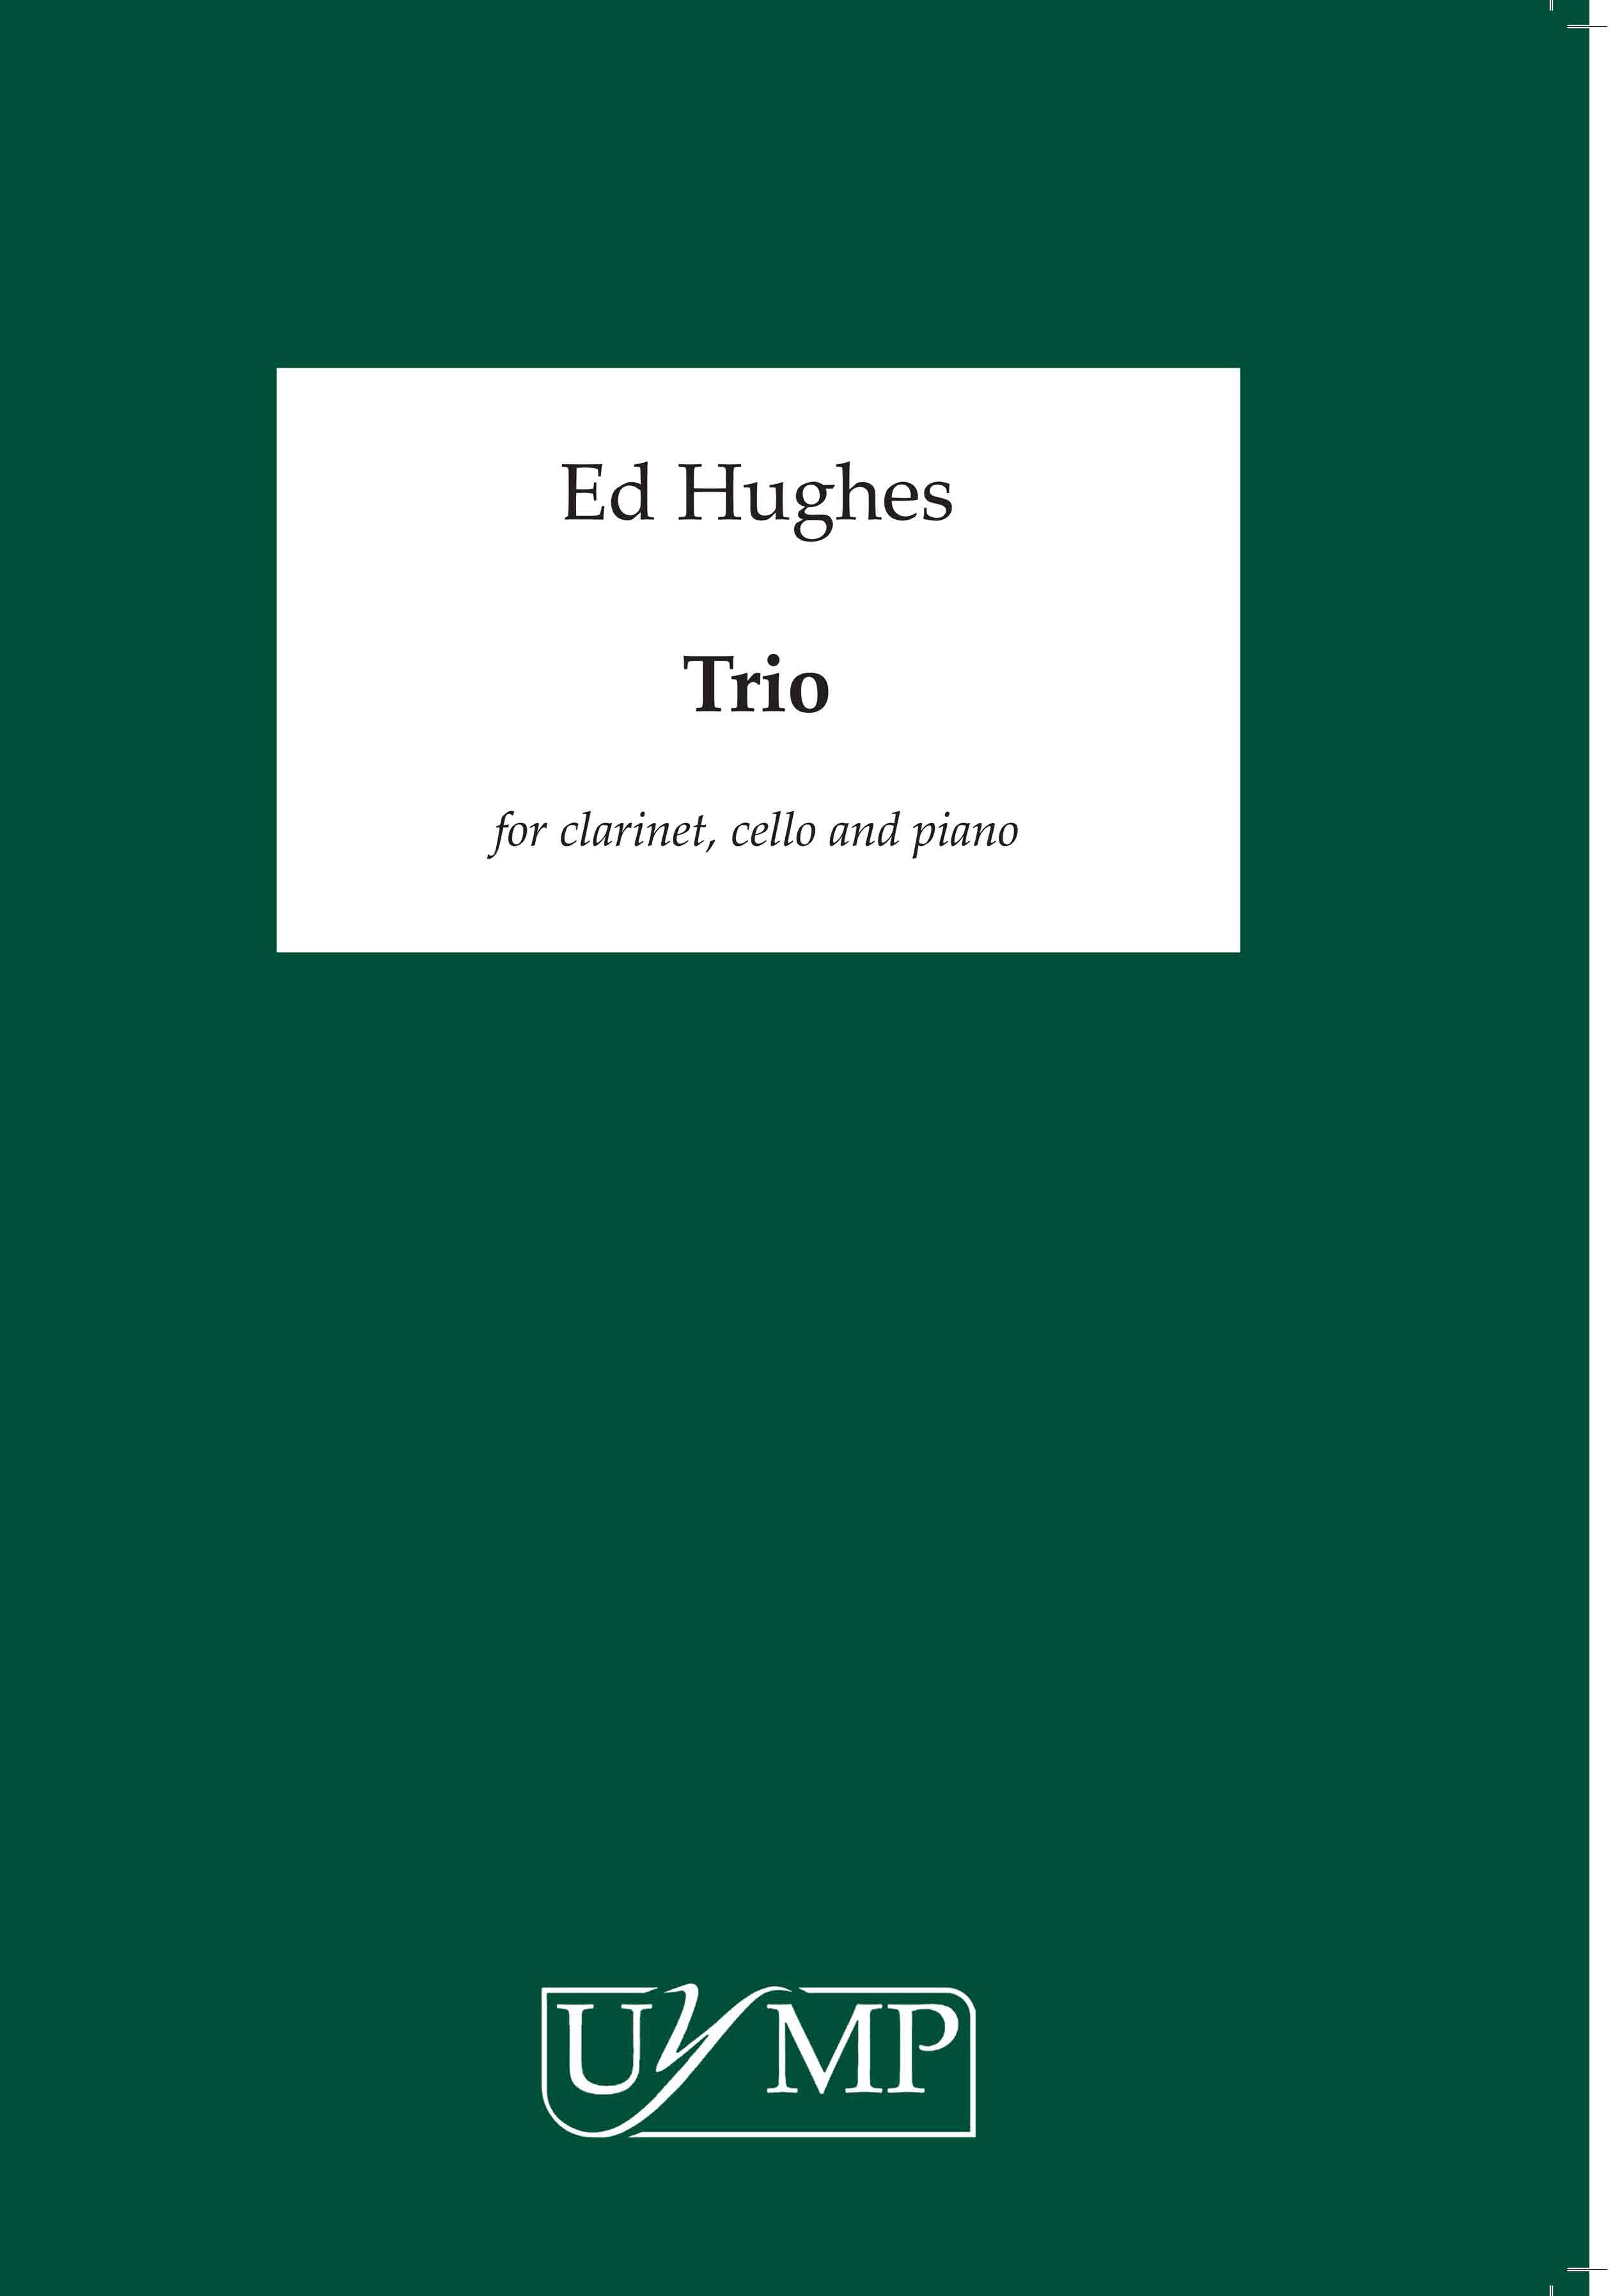 Ed Hughes: Trio - Performing Score And Parts: Clarinet & Cello: Score and Parts